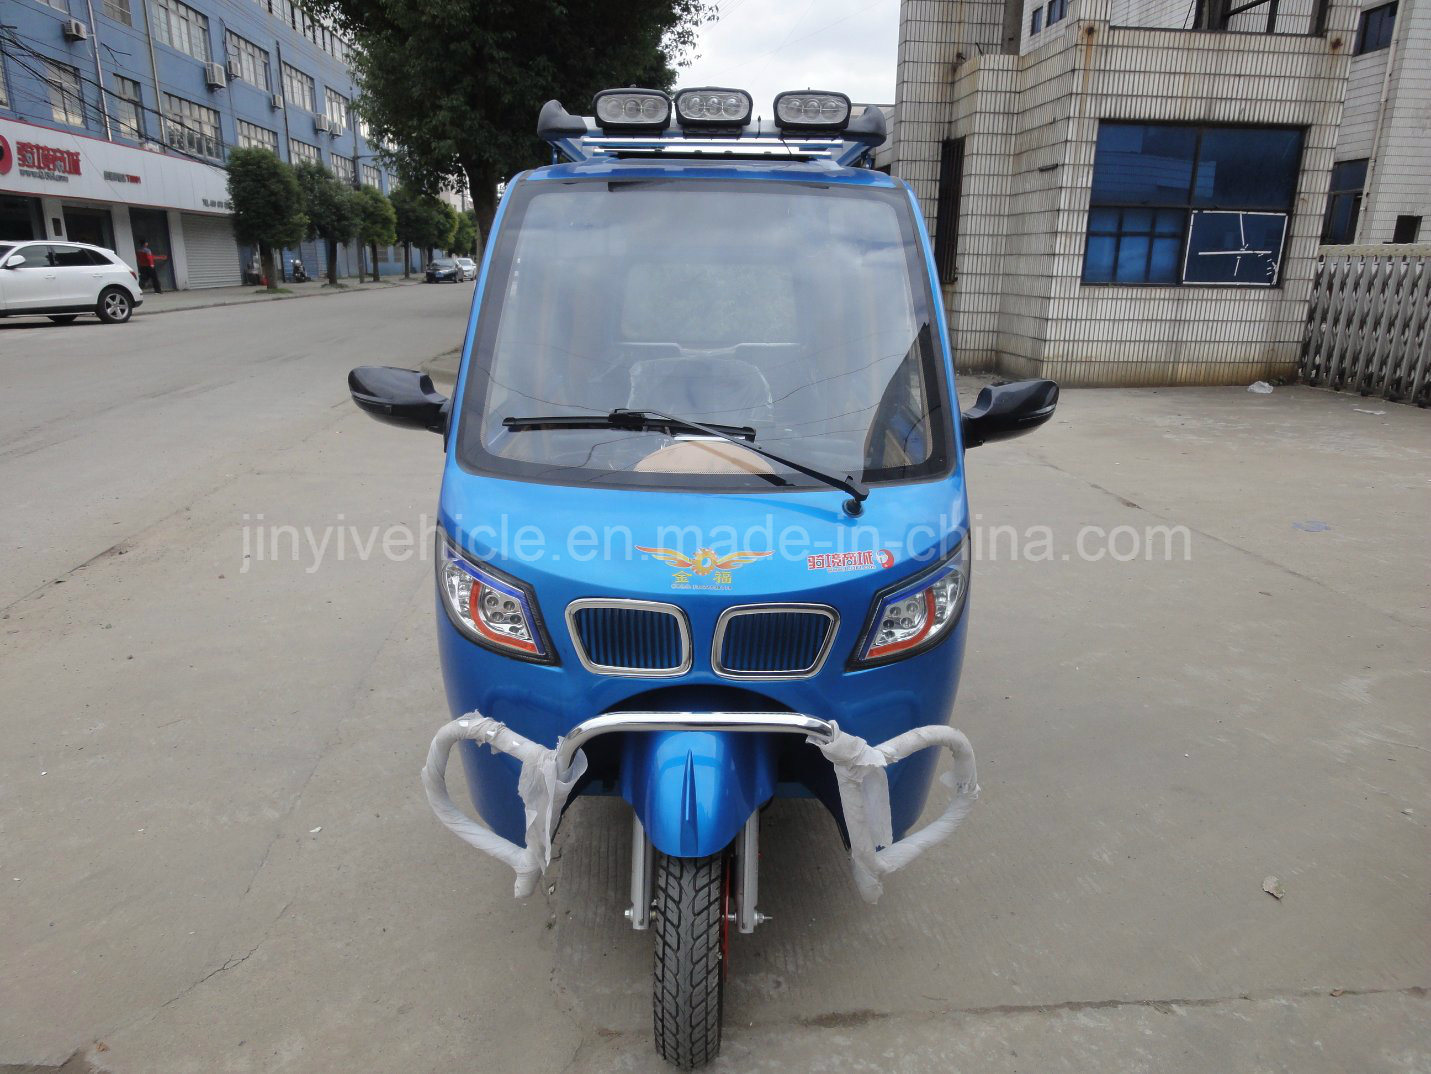 125cc 150cc Passenger Tricycle with Skylight